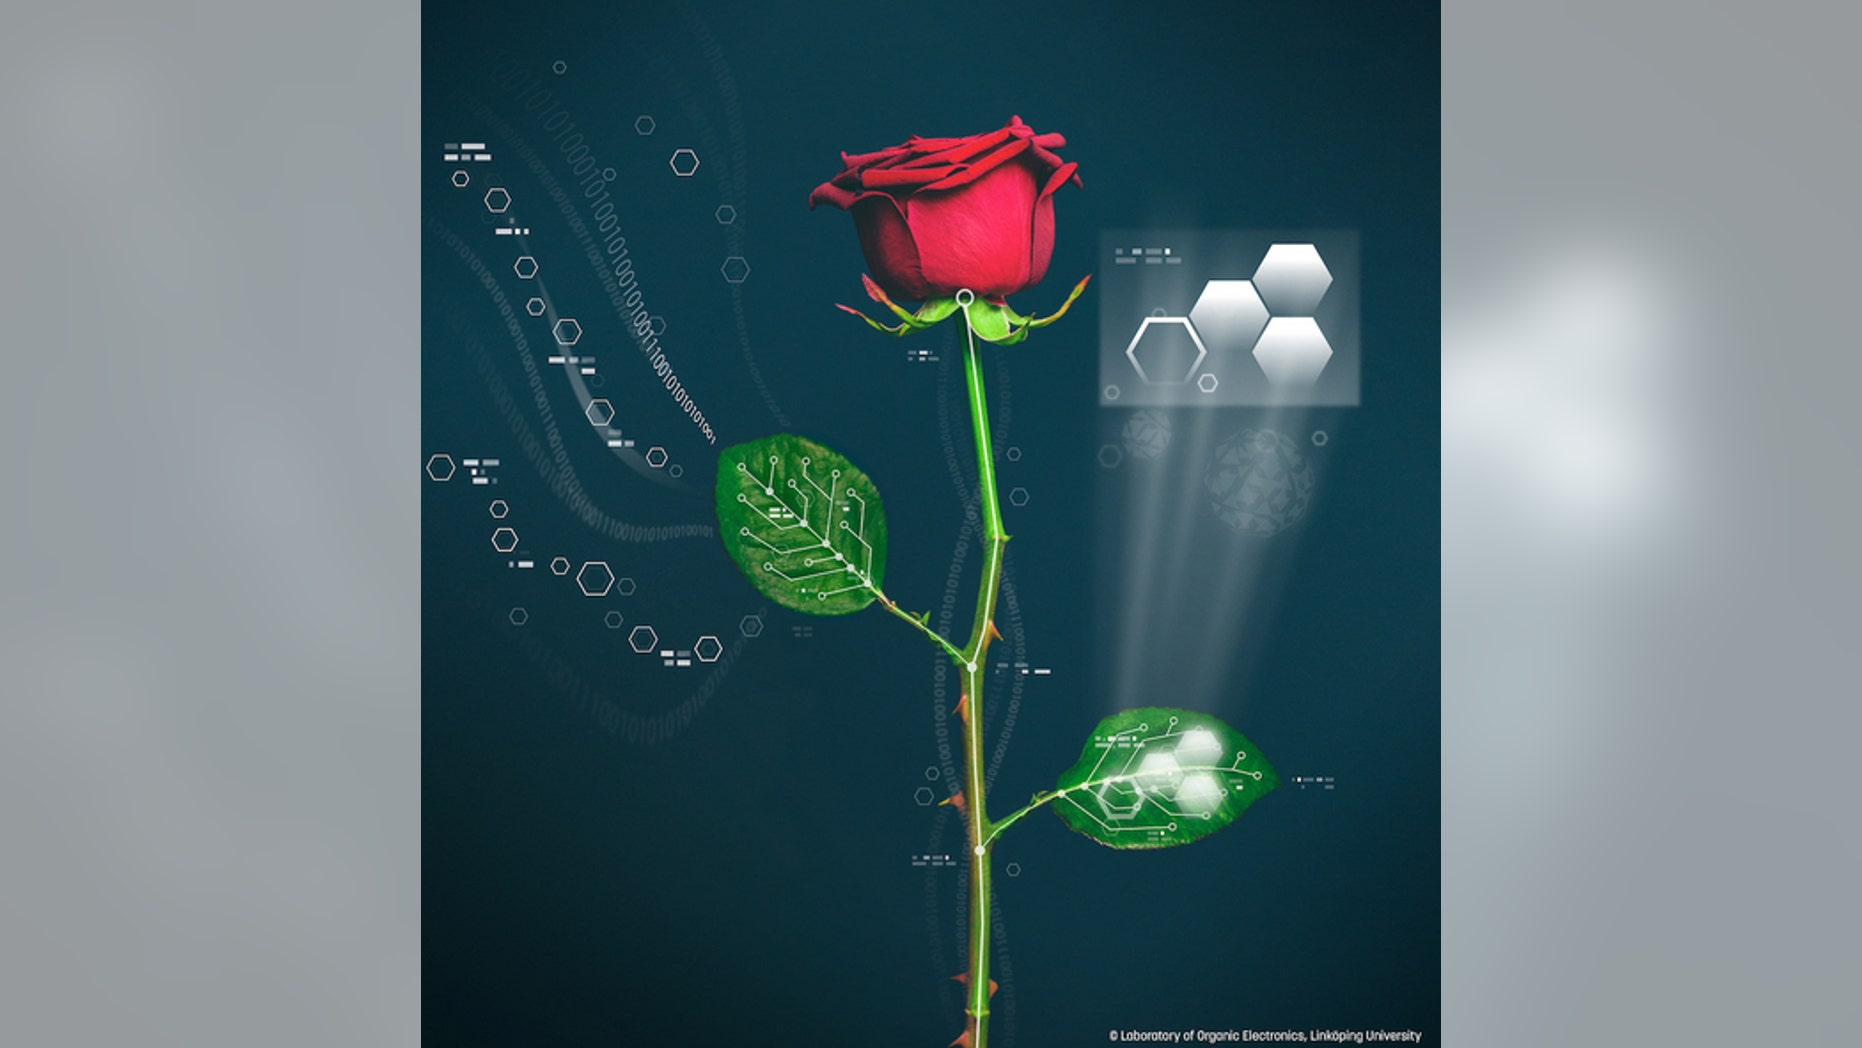 Scientists have created roses that have self-assembling electronic circuits inside them. The method could one day help produce self-monitoring plants.